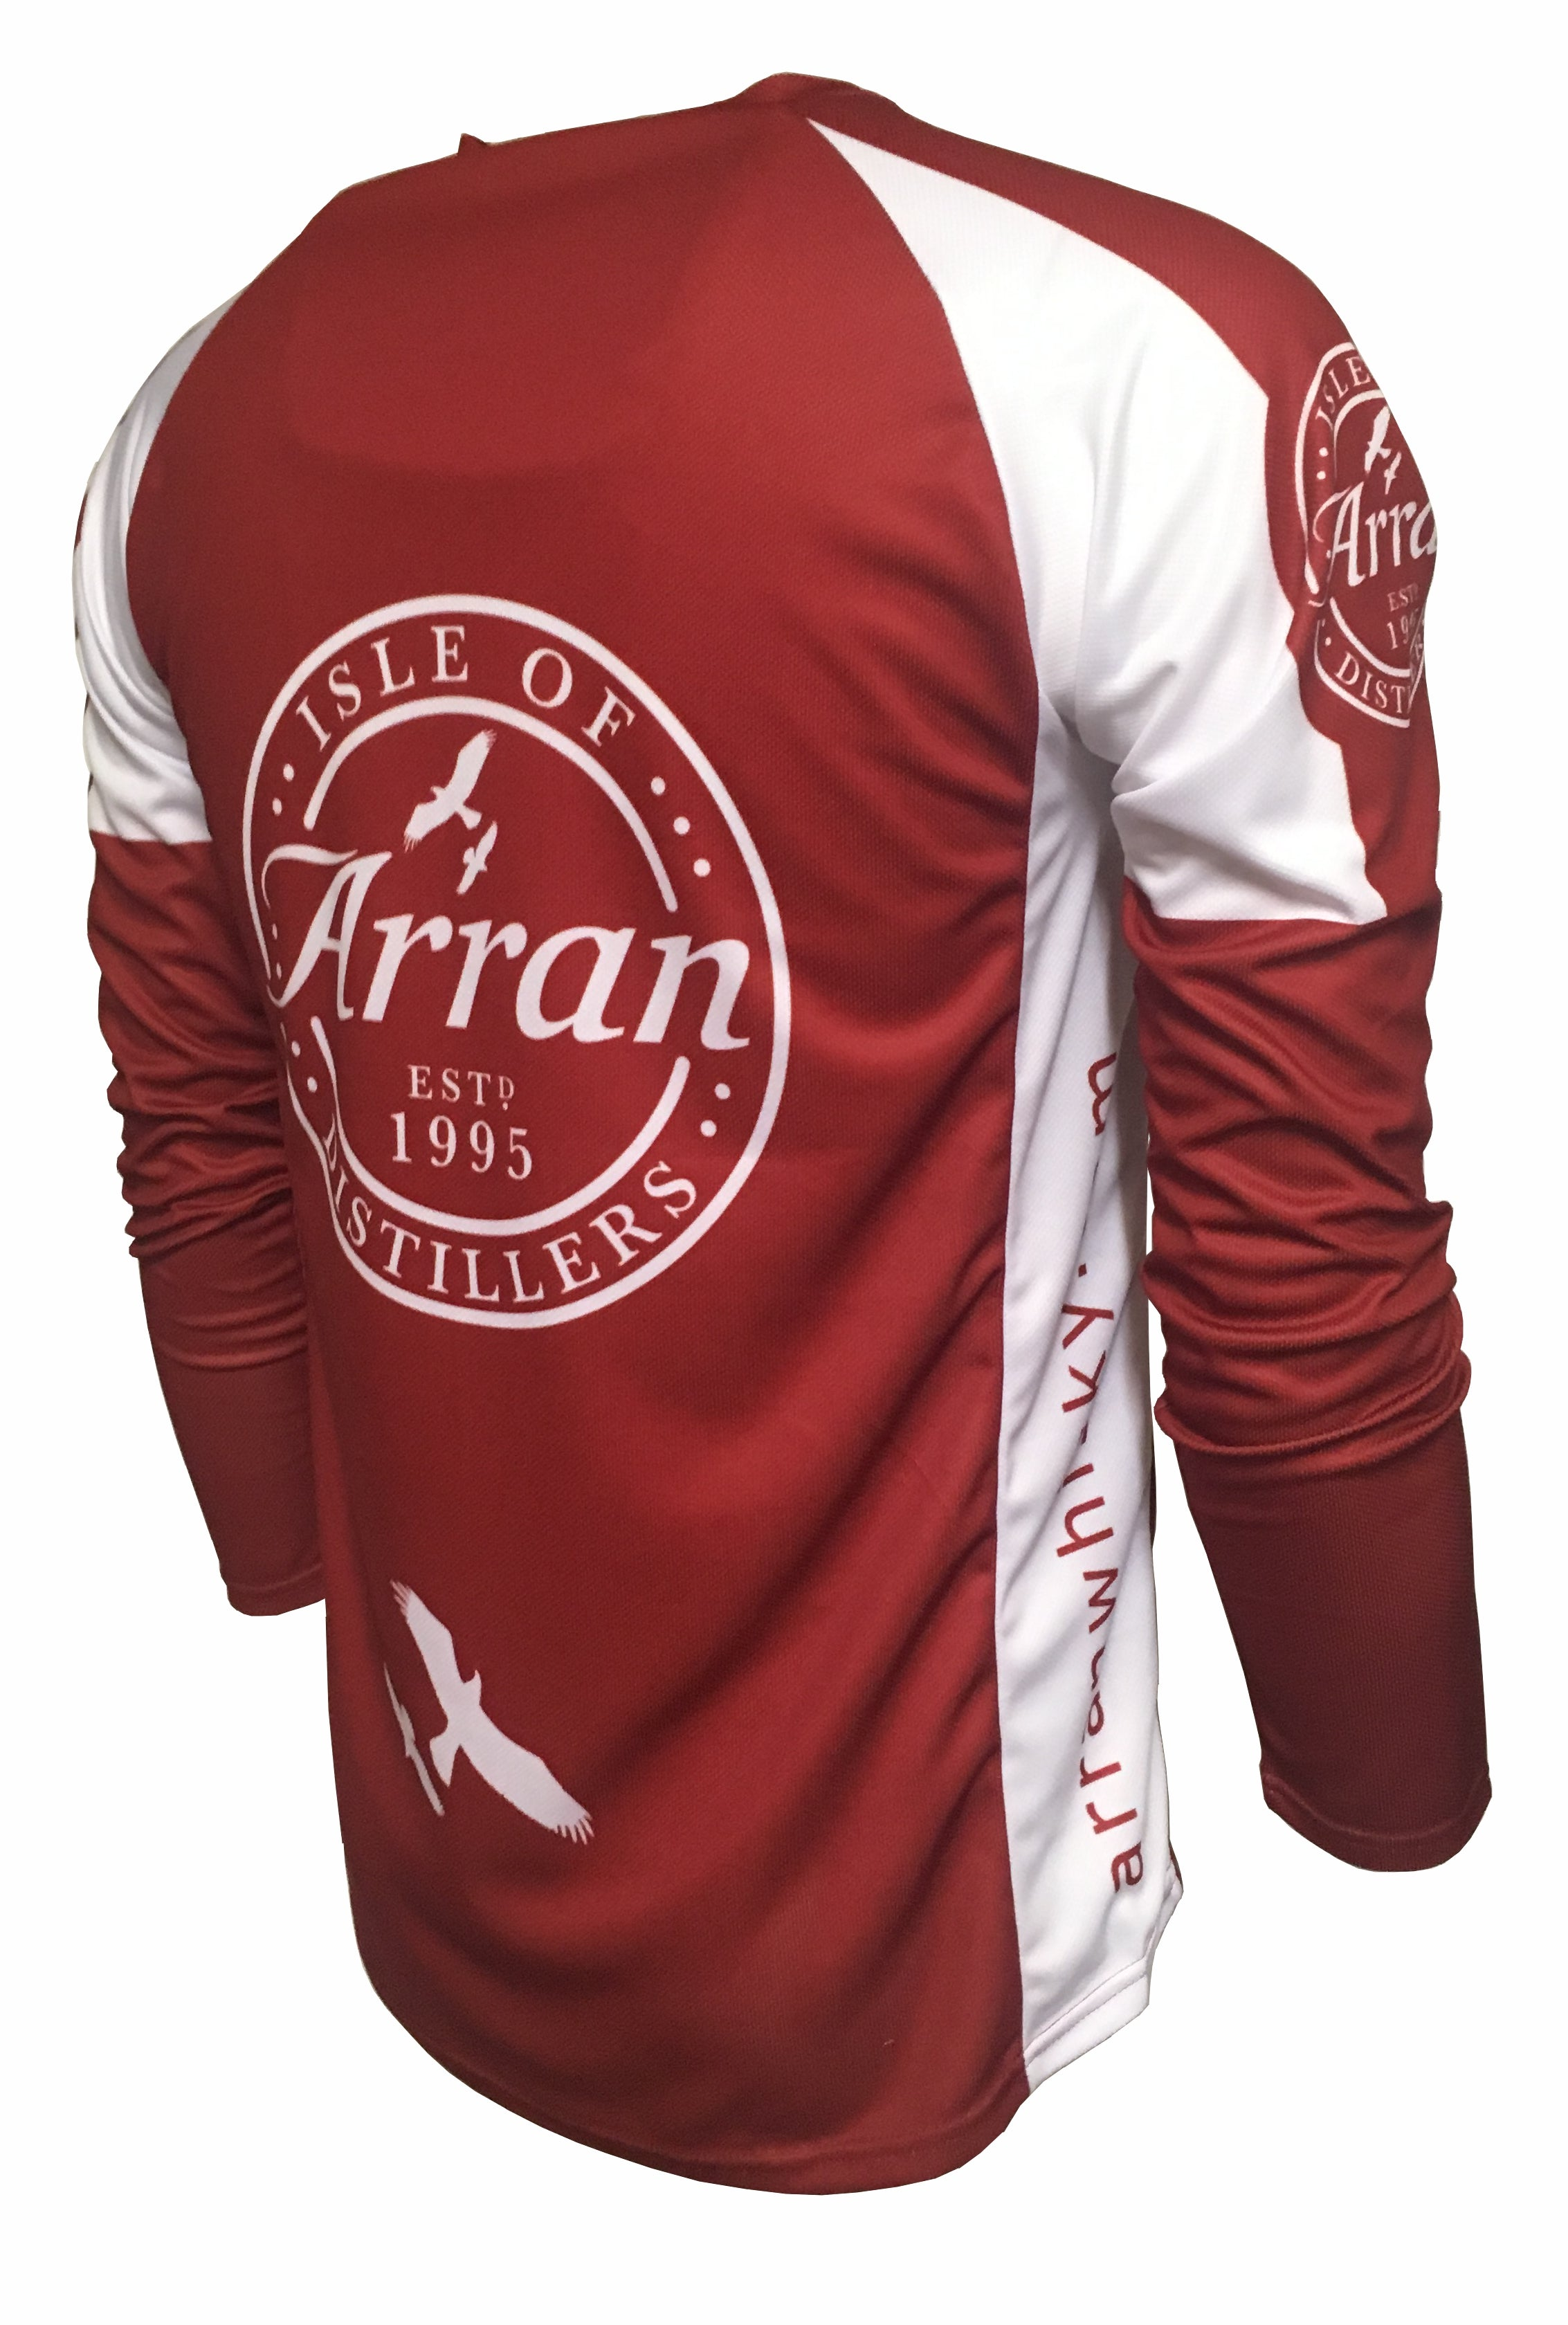 Arran Malt Whisky Red Enduro Cycling Jersey Back